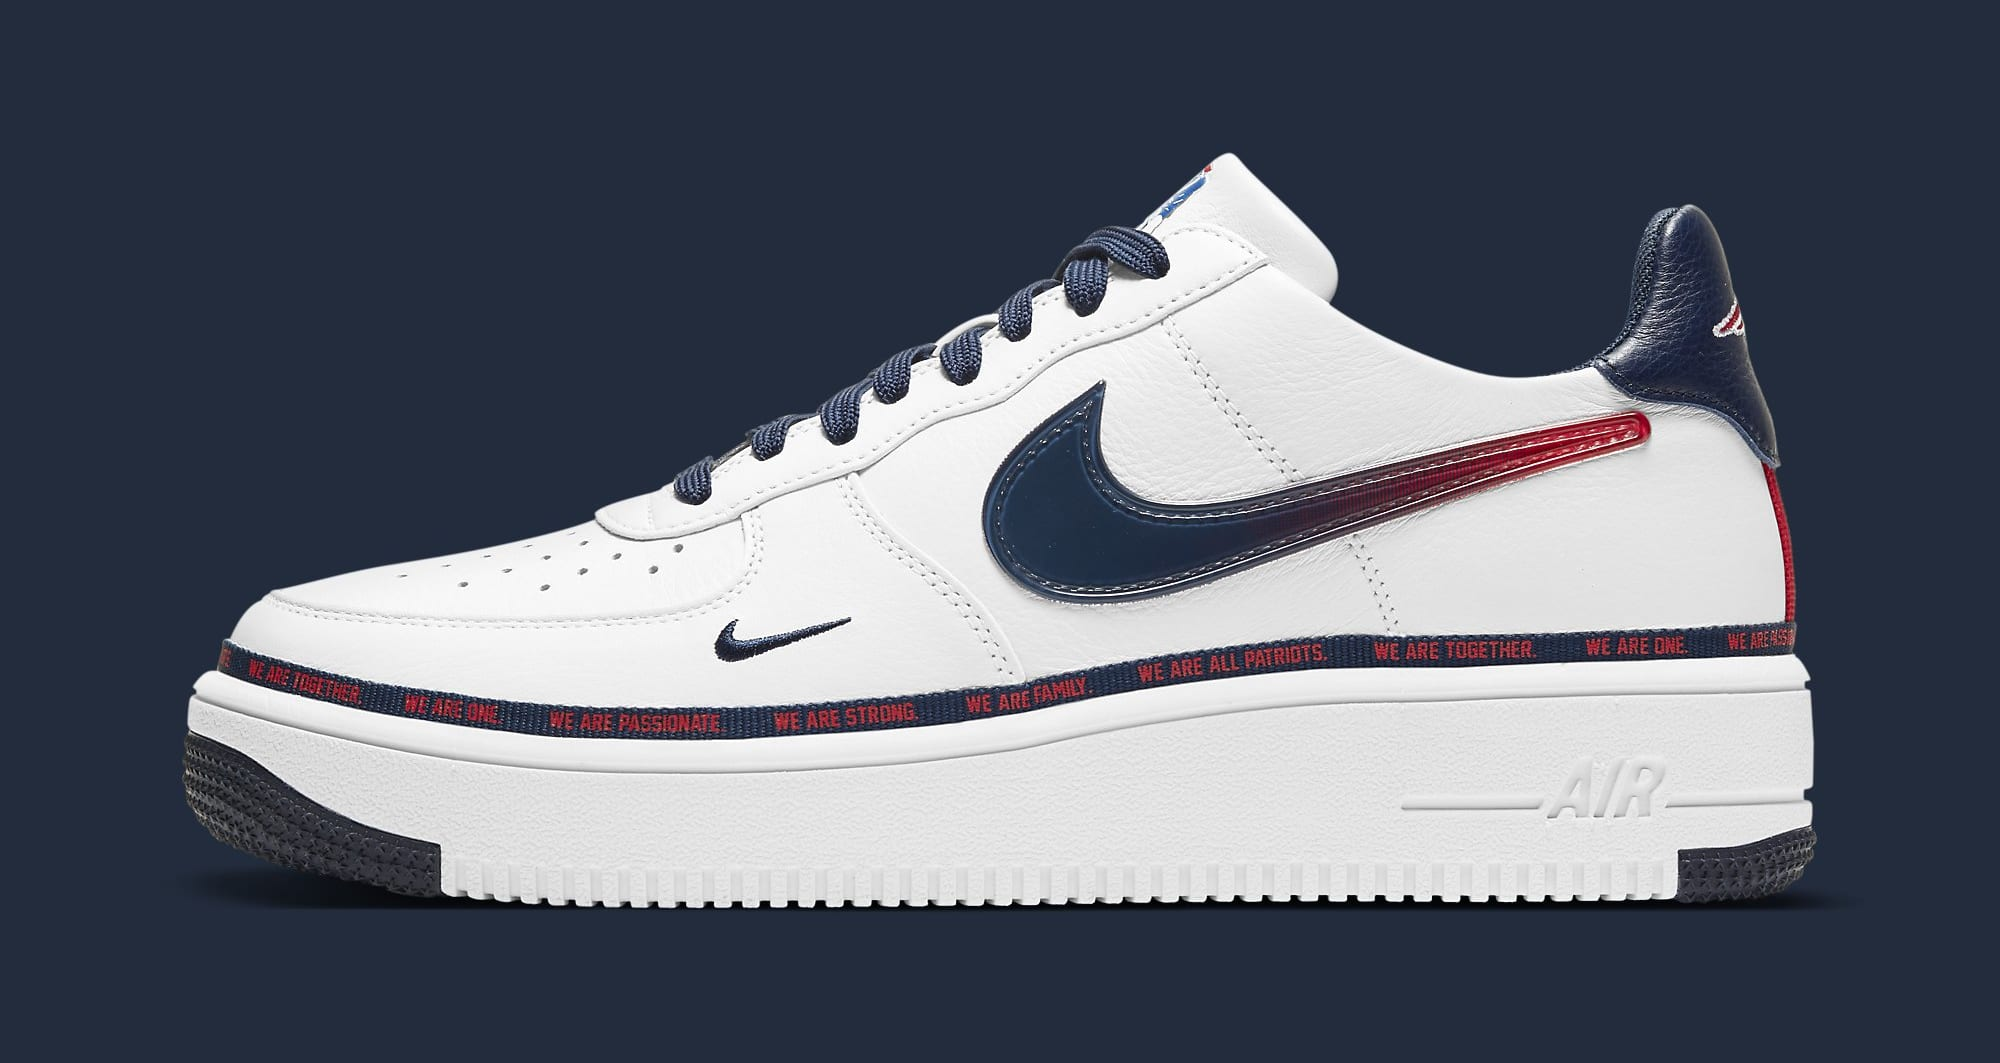 Nike Air Force 1 Ultraforce 'New England Patriots' DB6316-100 Lateral